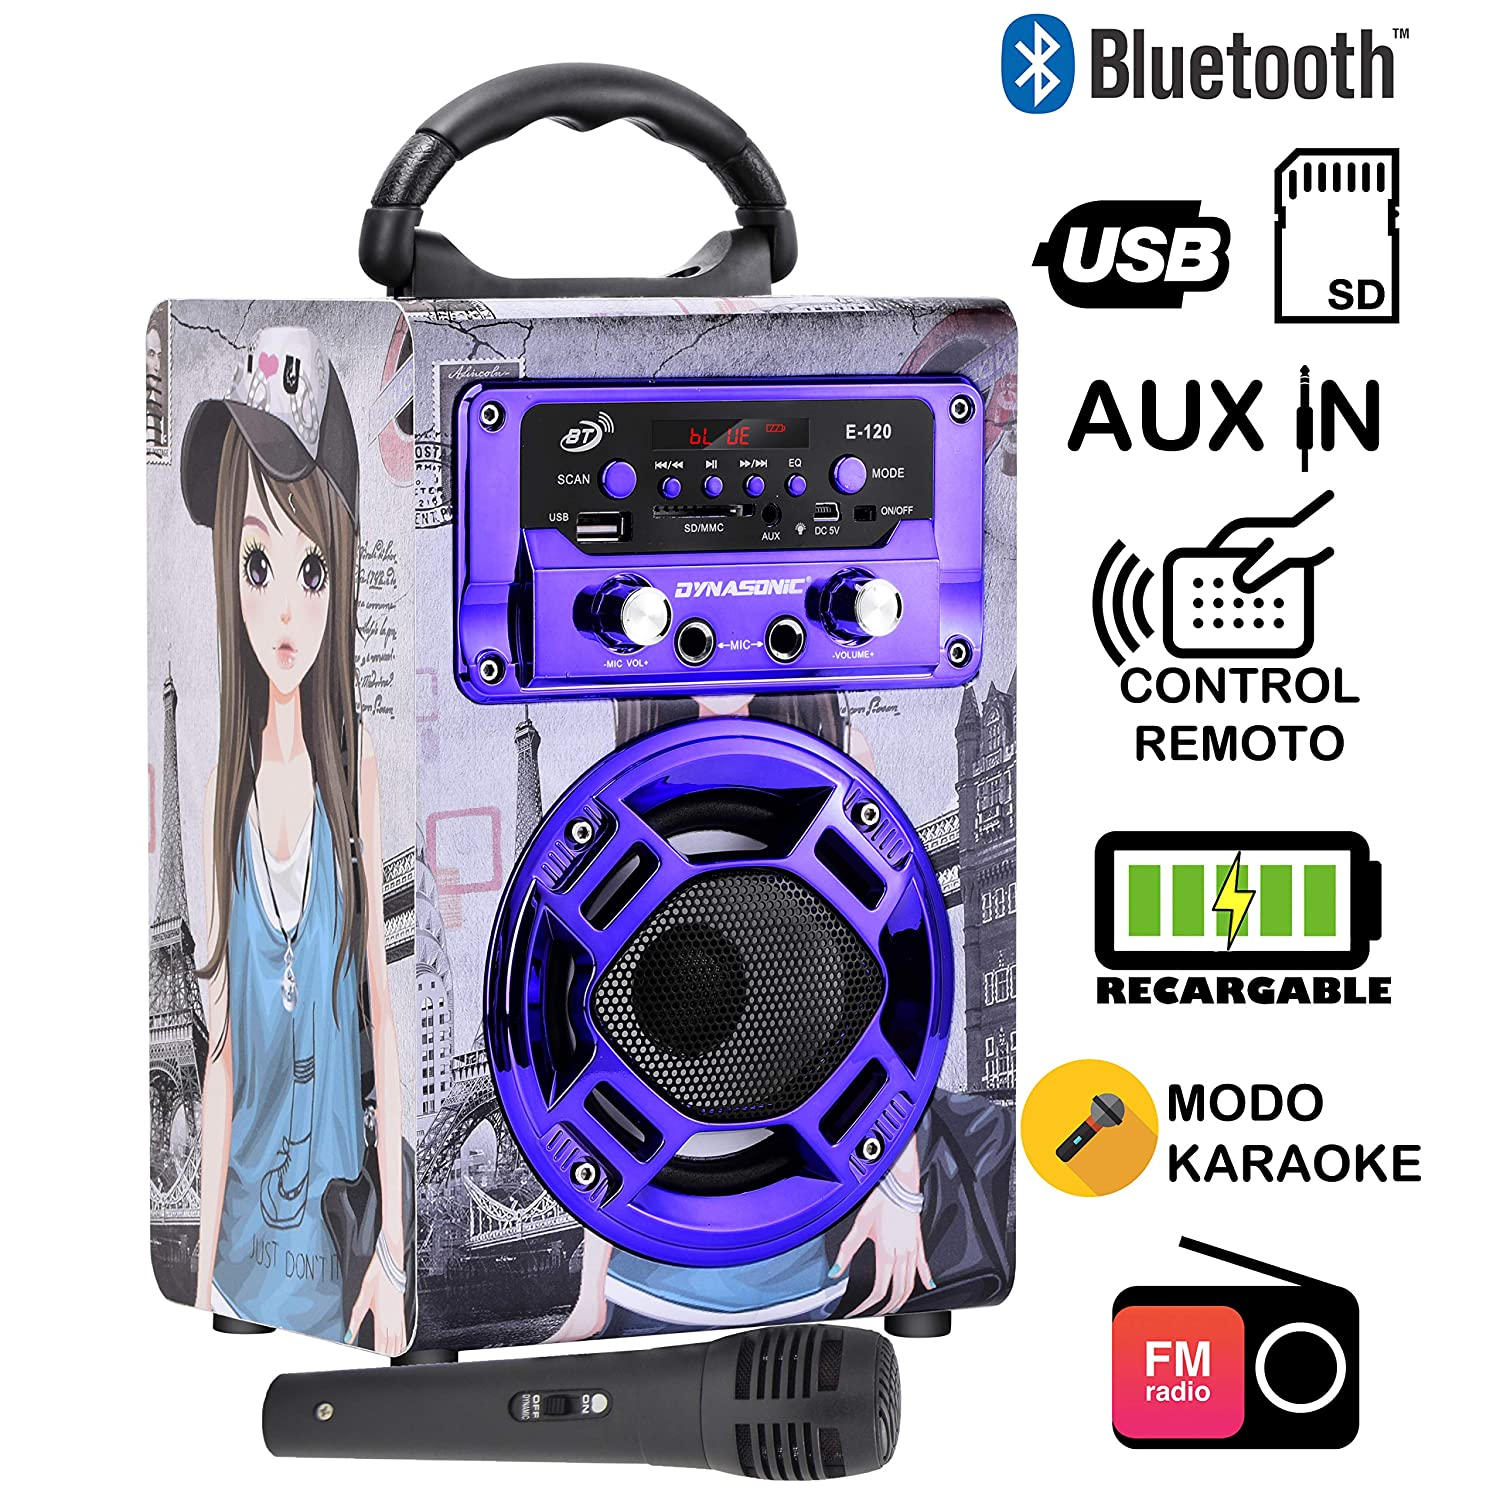 dynasonic 120 - Mini altoparlante bluetooth portatile karaoke 2